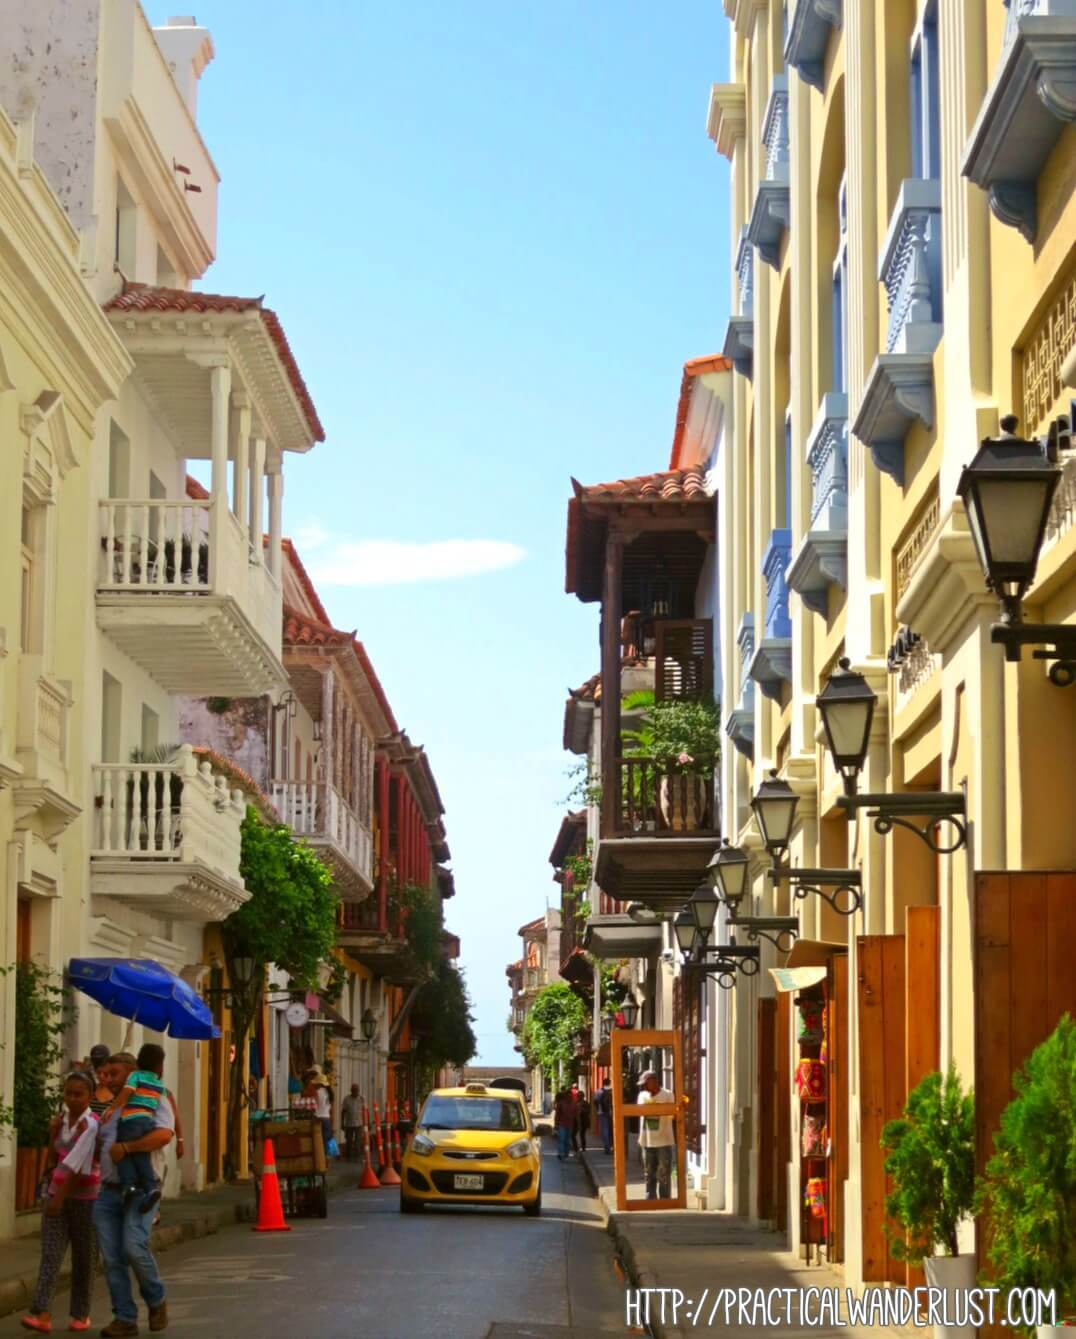 A taxi winding its way through the crowded, curving streets of the old Walled City in Cartagena, Colombia.